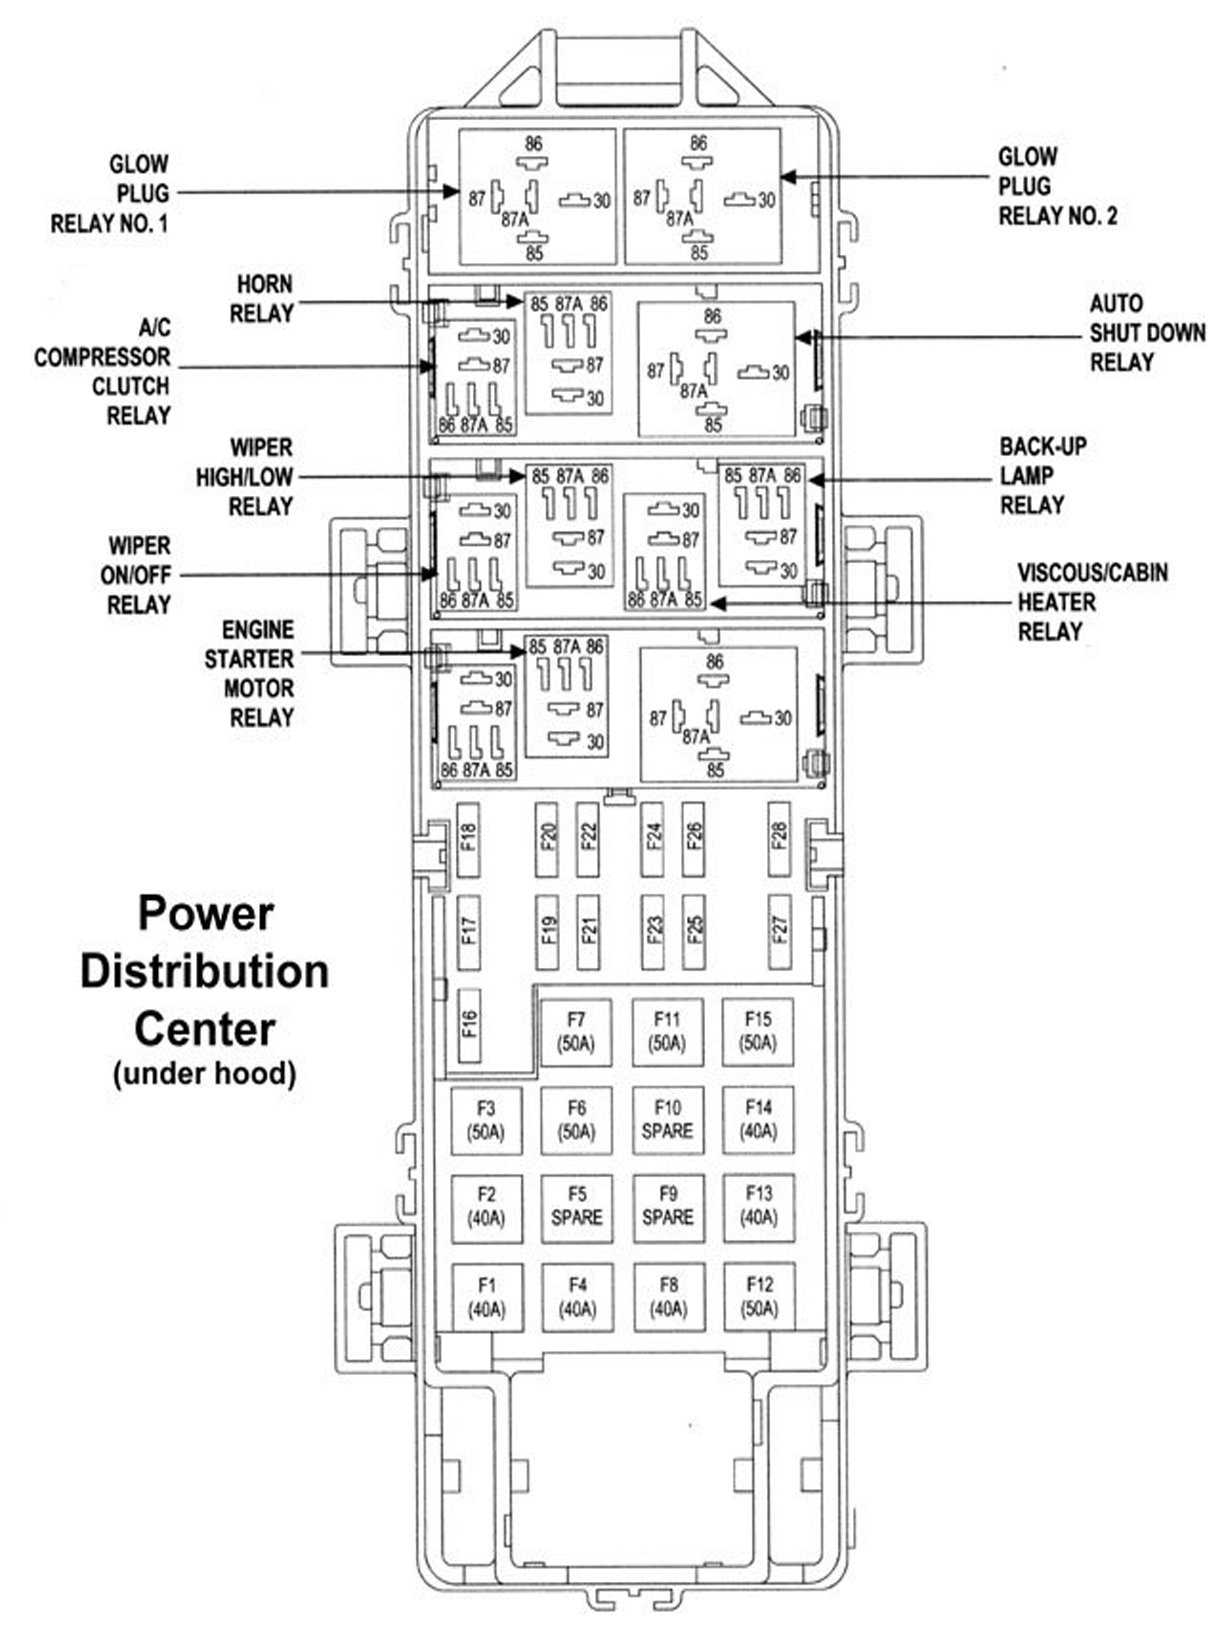 wiring diagram for 2001 jeep grand cherokee laredo with Jeep Grand Cherokee 1999 2004 Fuse Box Diagram 397760 on 74c5u Grand Cherokee Whereh Cam Position Sensor Located together with HP PartList in addition HP PartList moreover Jeep Cherokee 1997 2001 Fuse Box Diagram 398208 in addition Crank Sensor Location 68932.